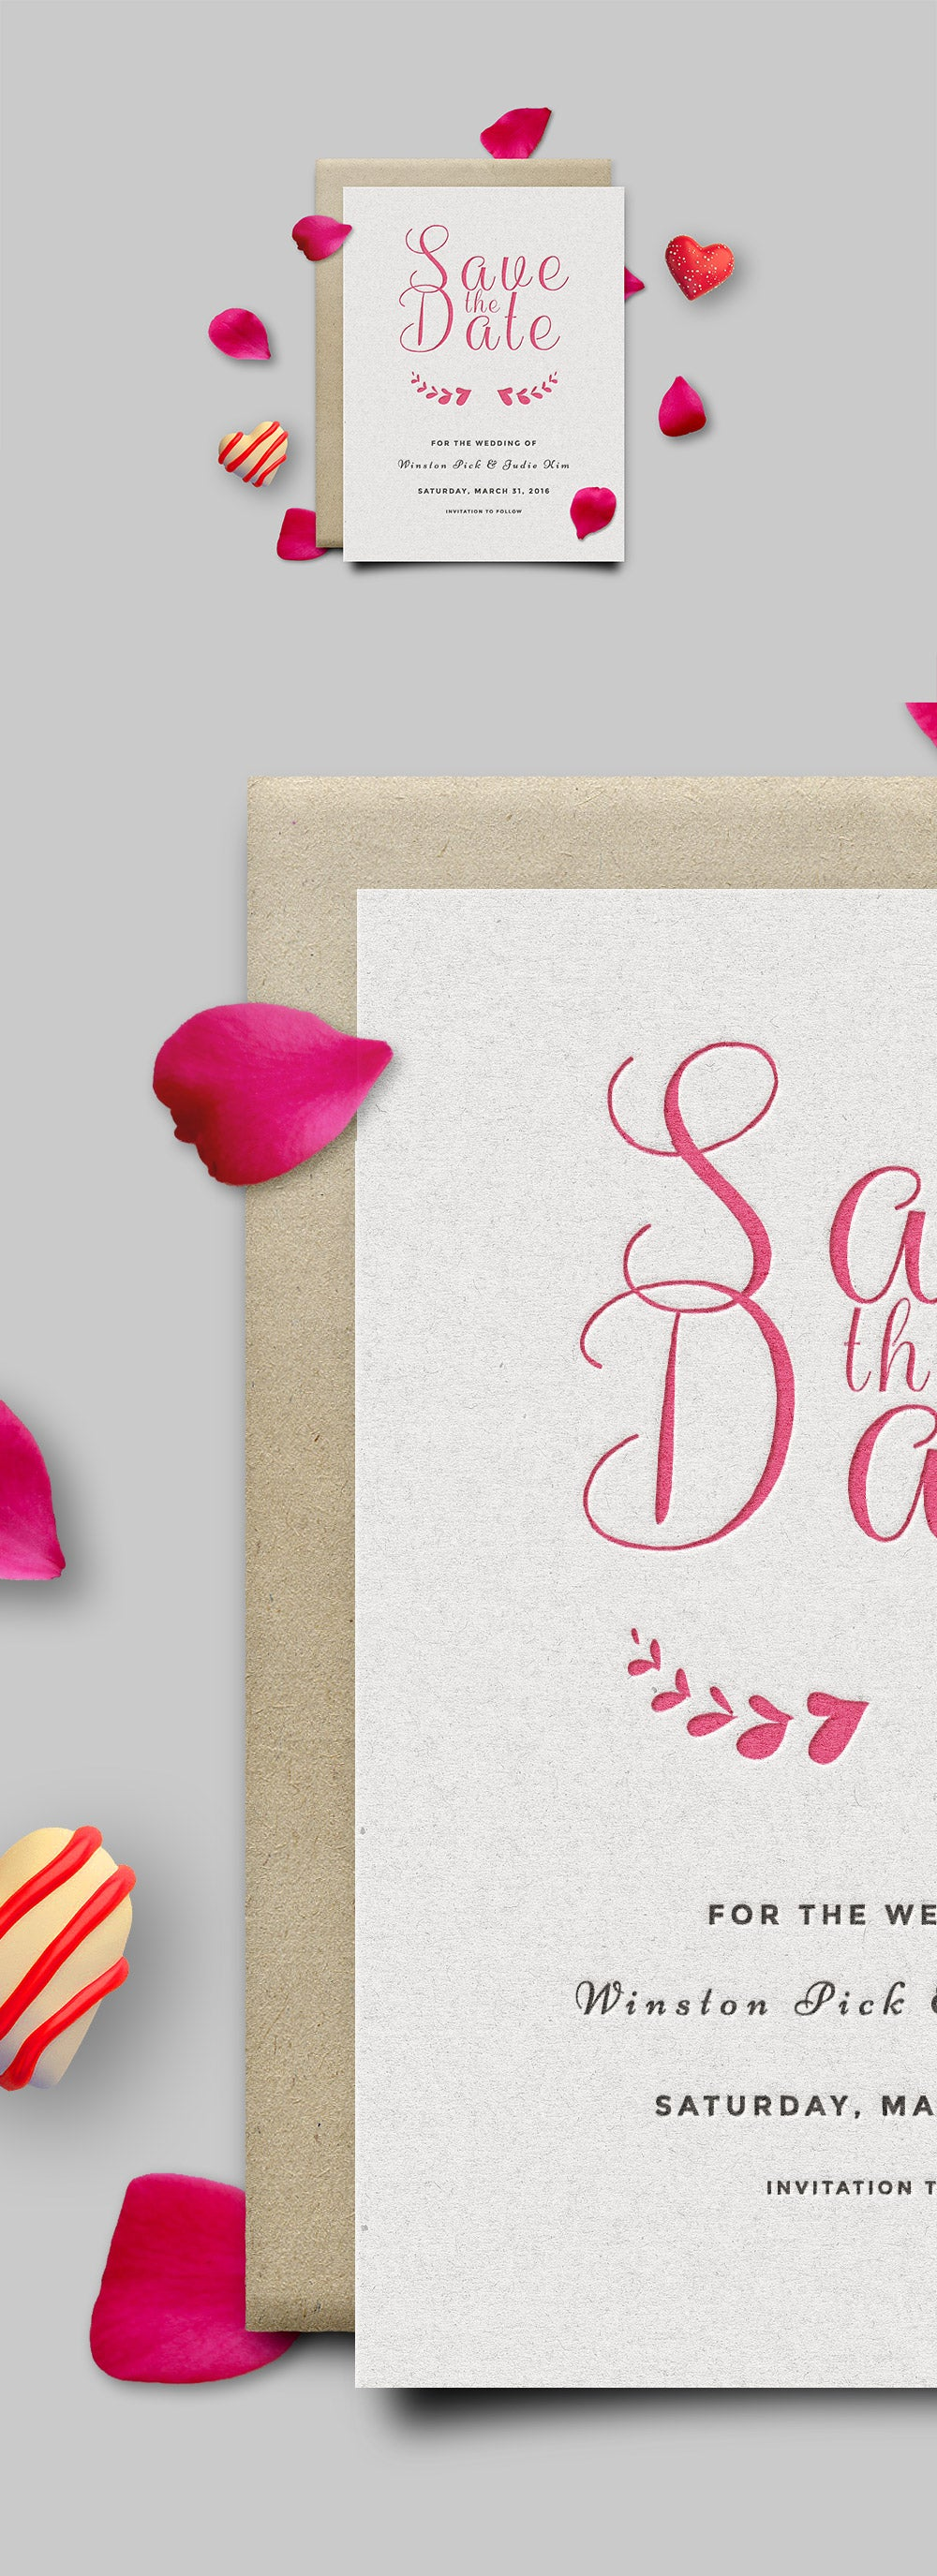 Save The Date Or Valentines Day Invitation Card Mockup Psd Mockup Hunt